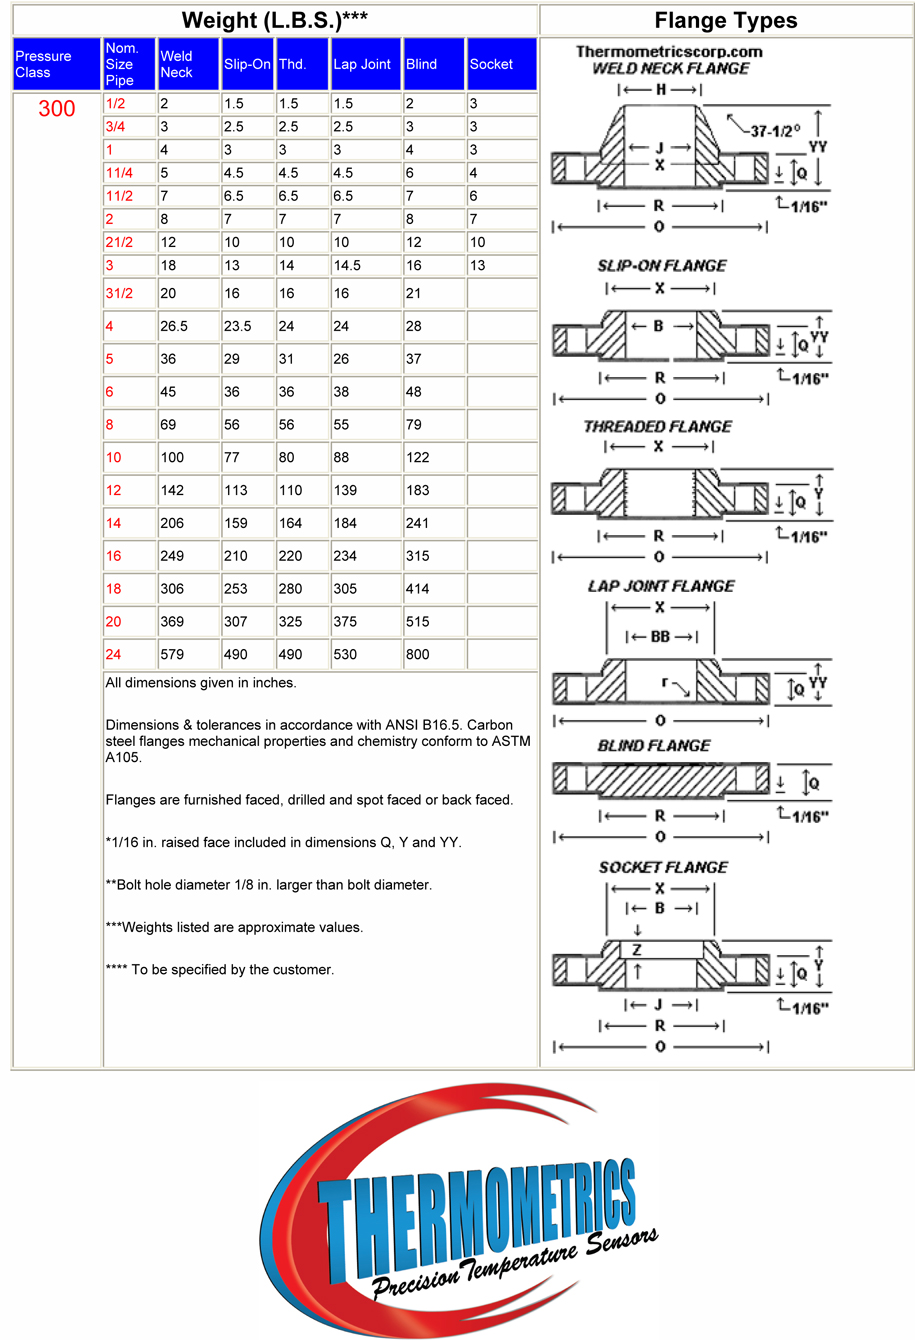 Flange Dimensions Class 300 Class 300 Flange Weight